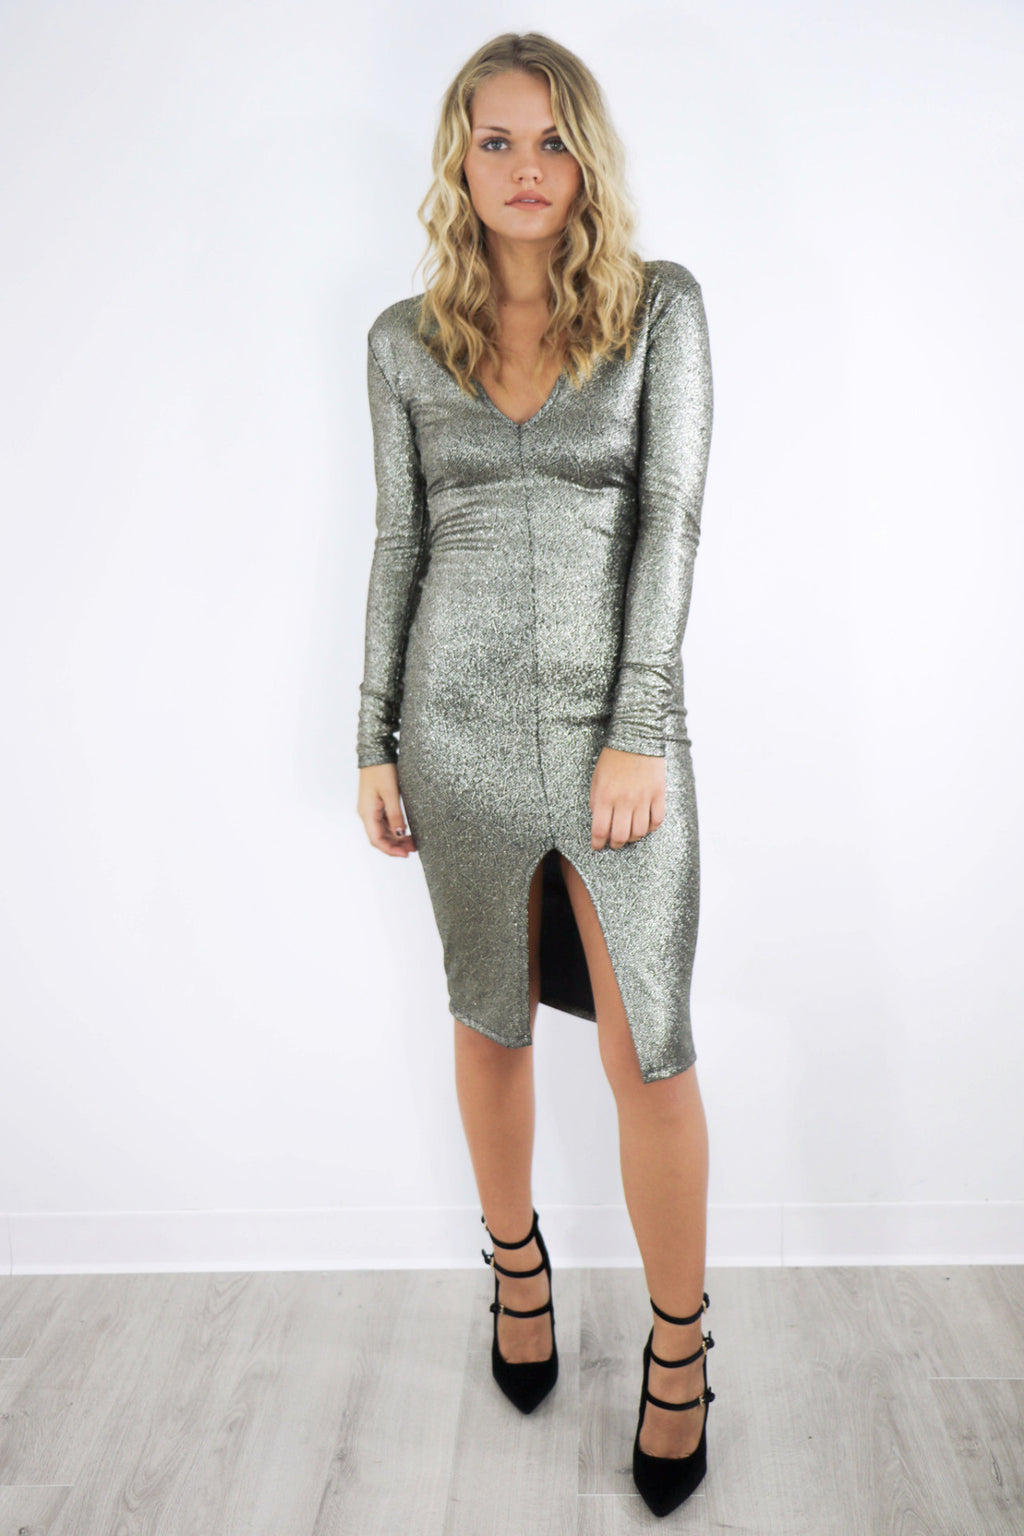 Exception To The Rule Metallic Dress - Amazing Lace